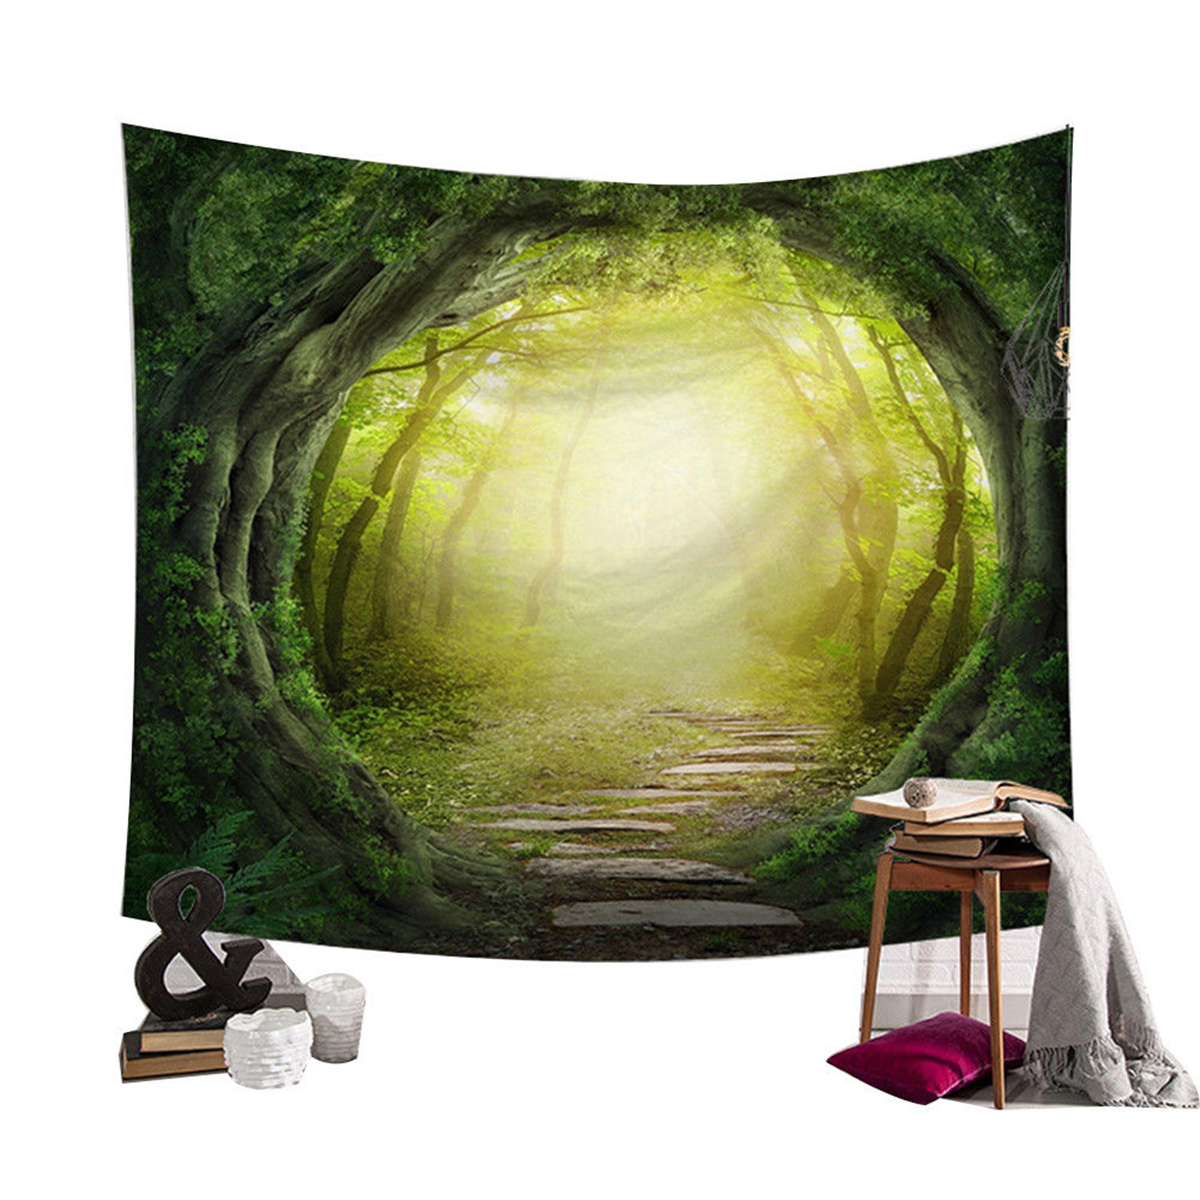 Sun-Star-Moon-Fairy-Tarot-Tapestry-Wall-Hanging-Cover-Throw-Bedspread-Home-Decor